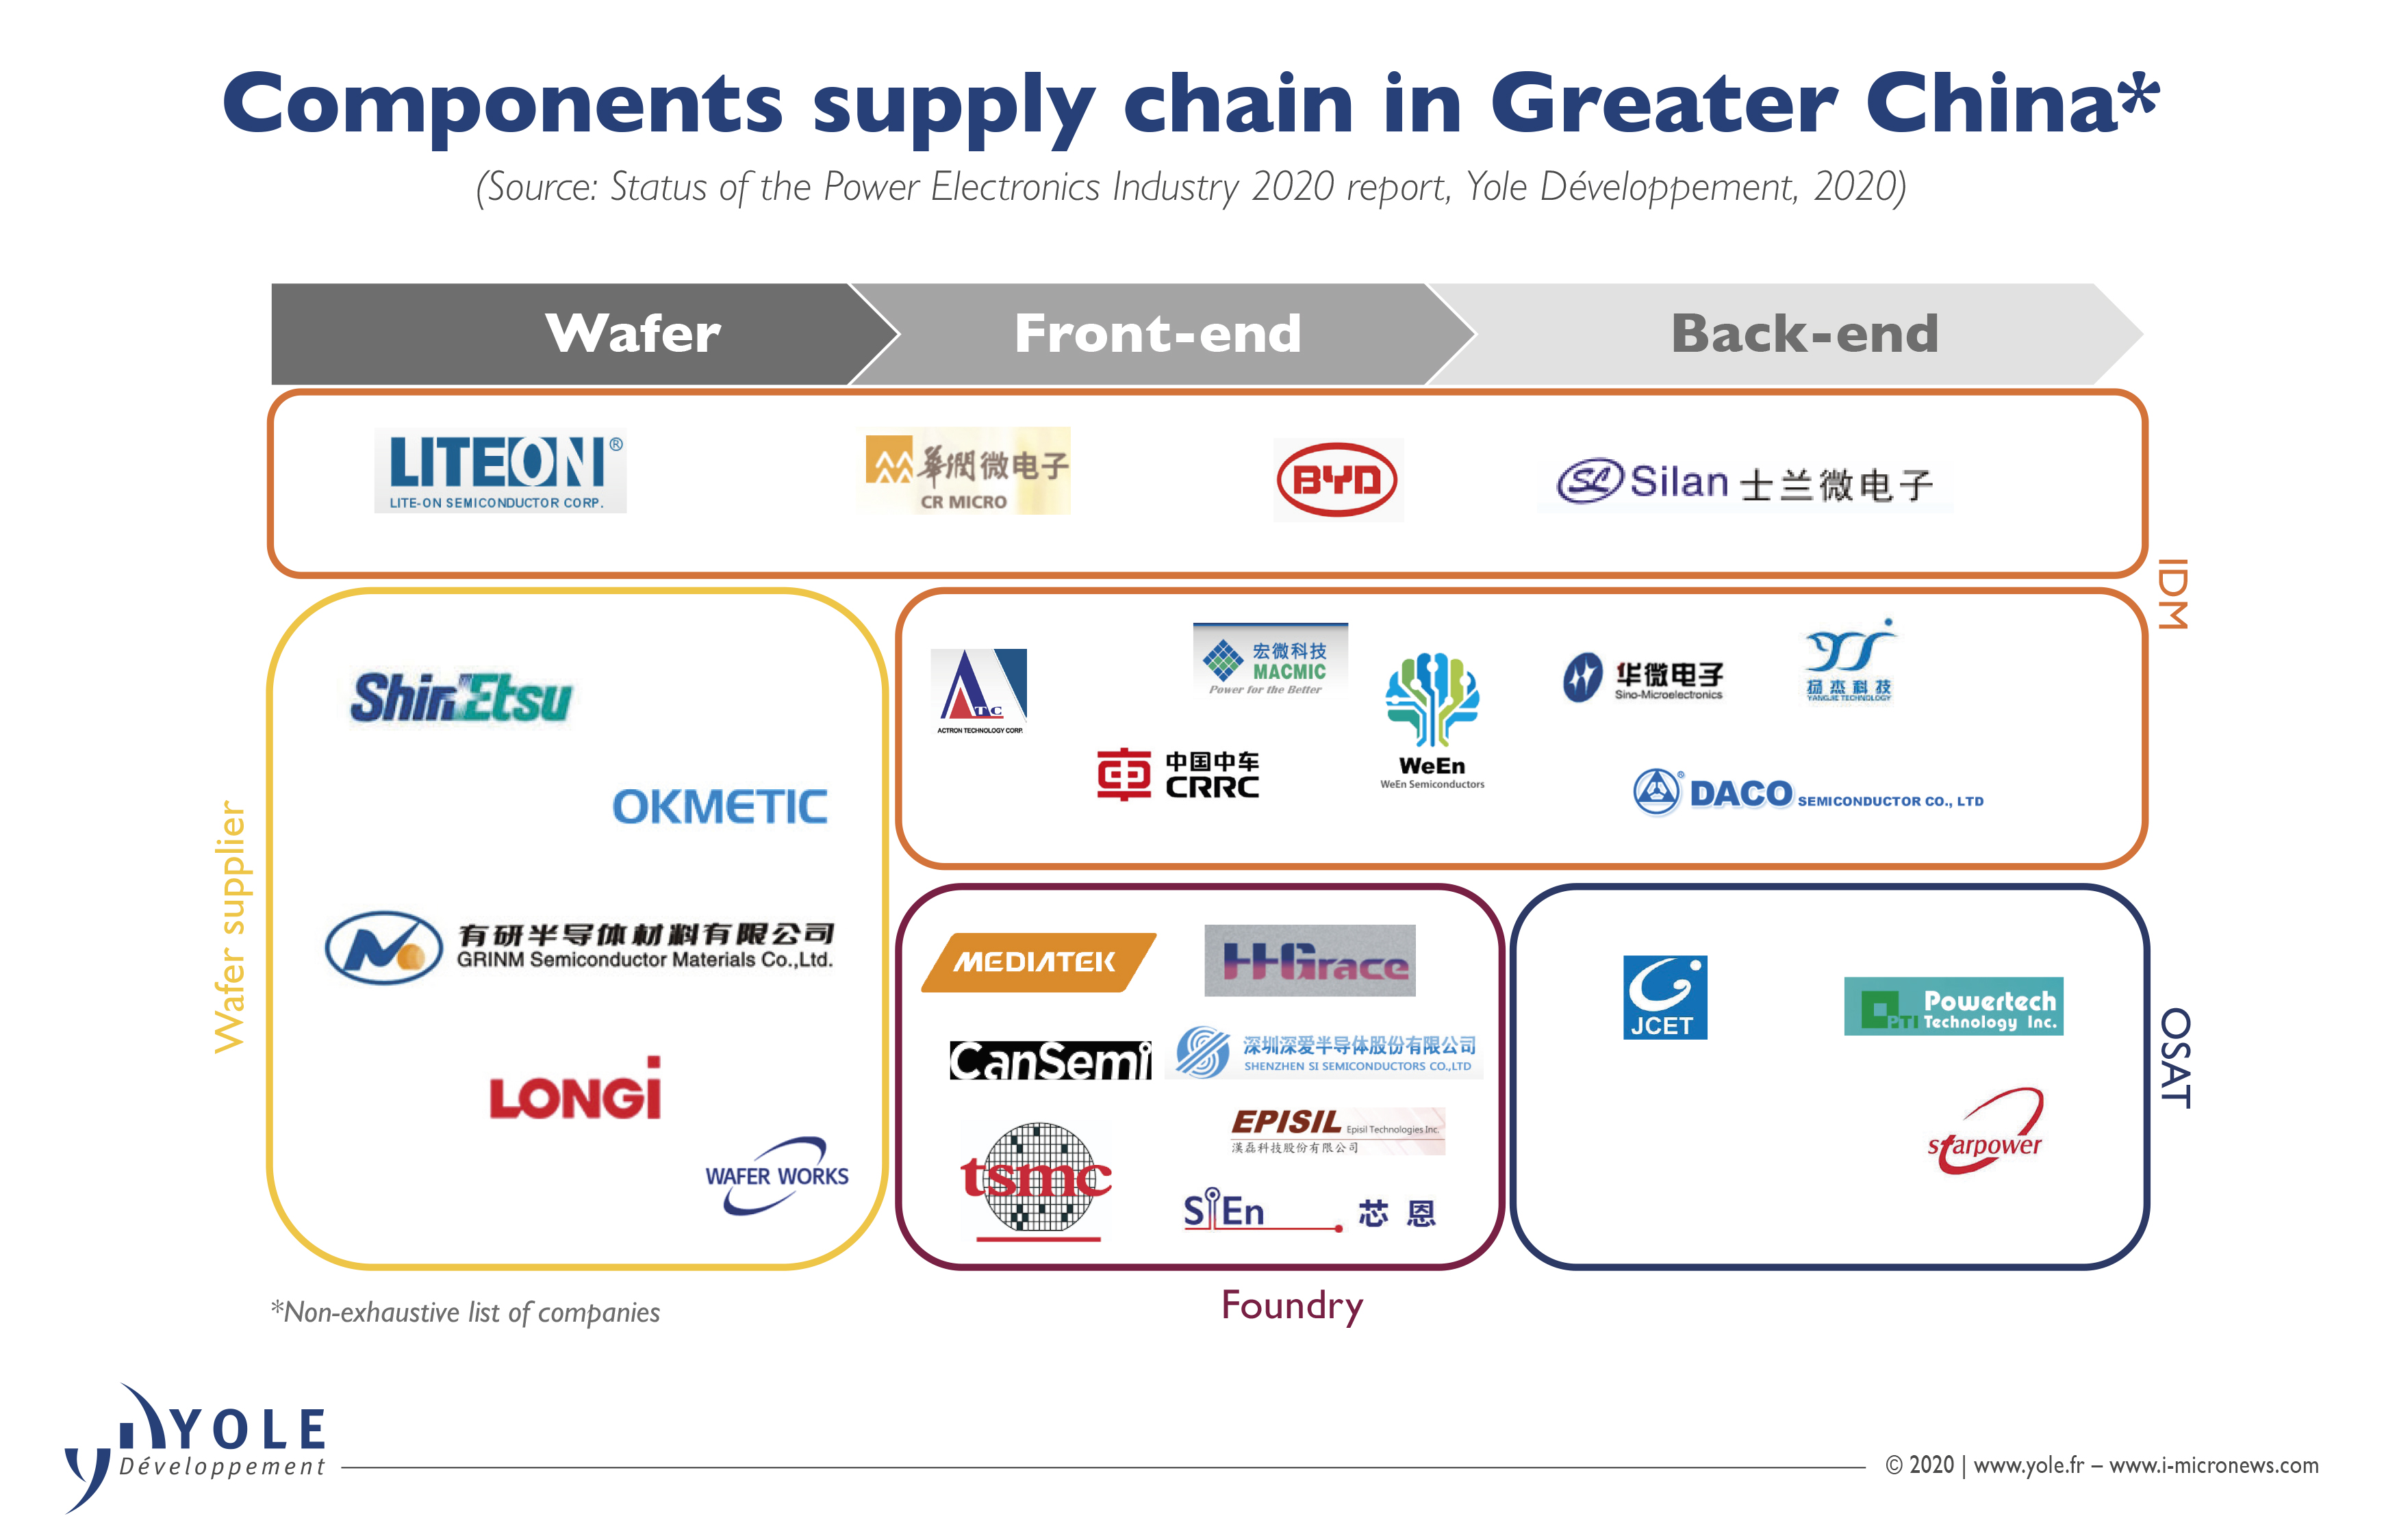 ILLUS_SPEI_ComponentsSupplyChainInGreaterChina_Yole_Oct2020